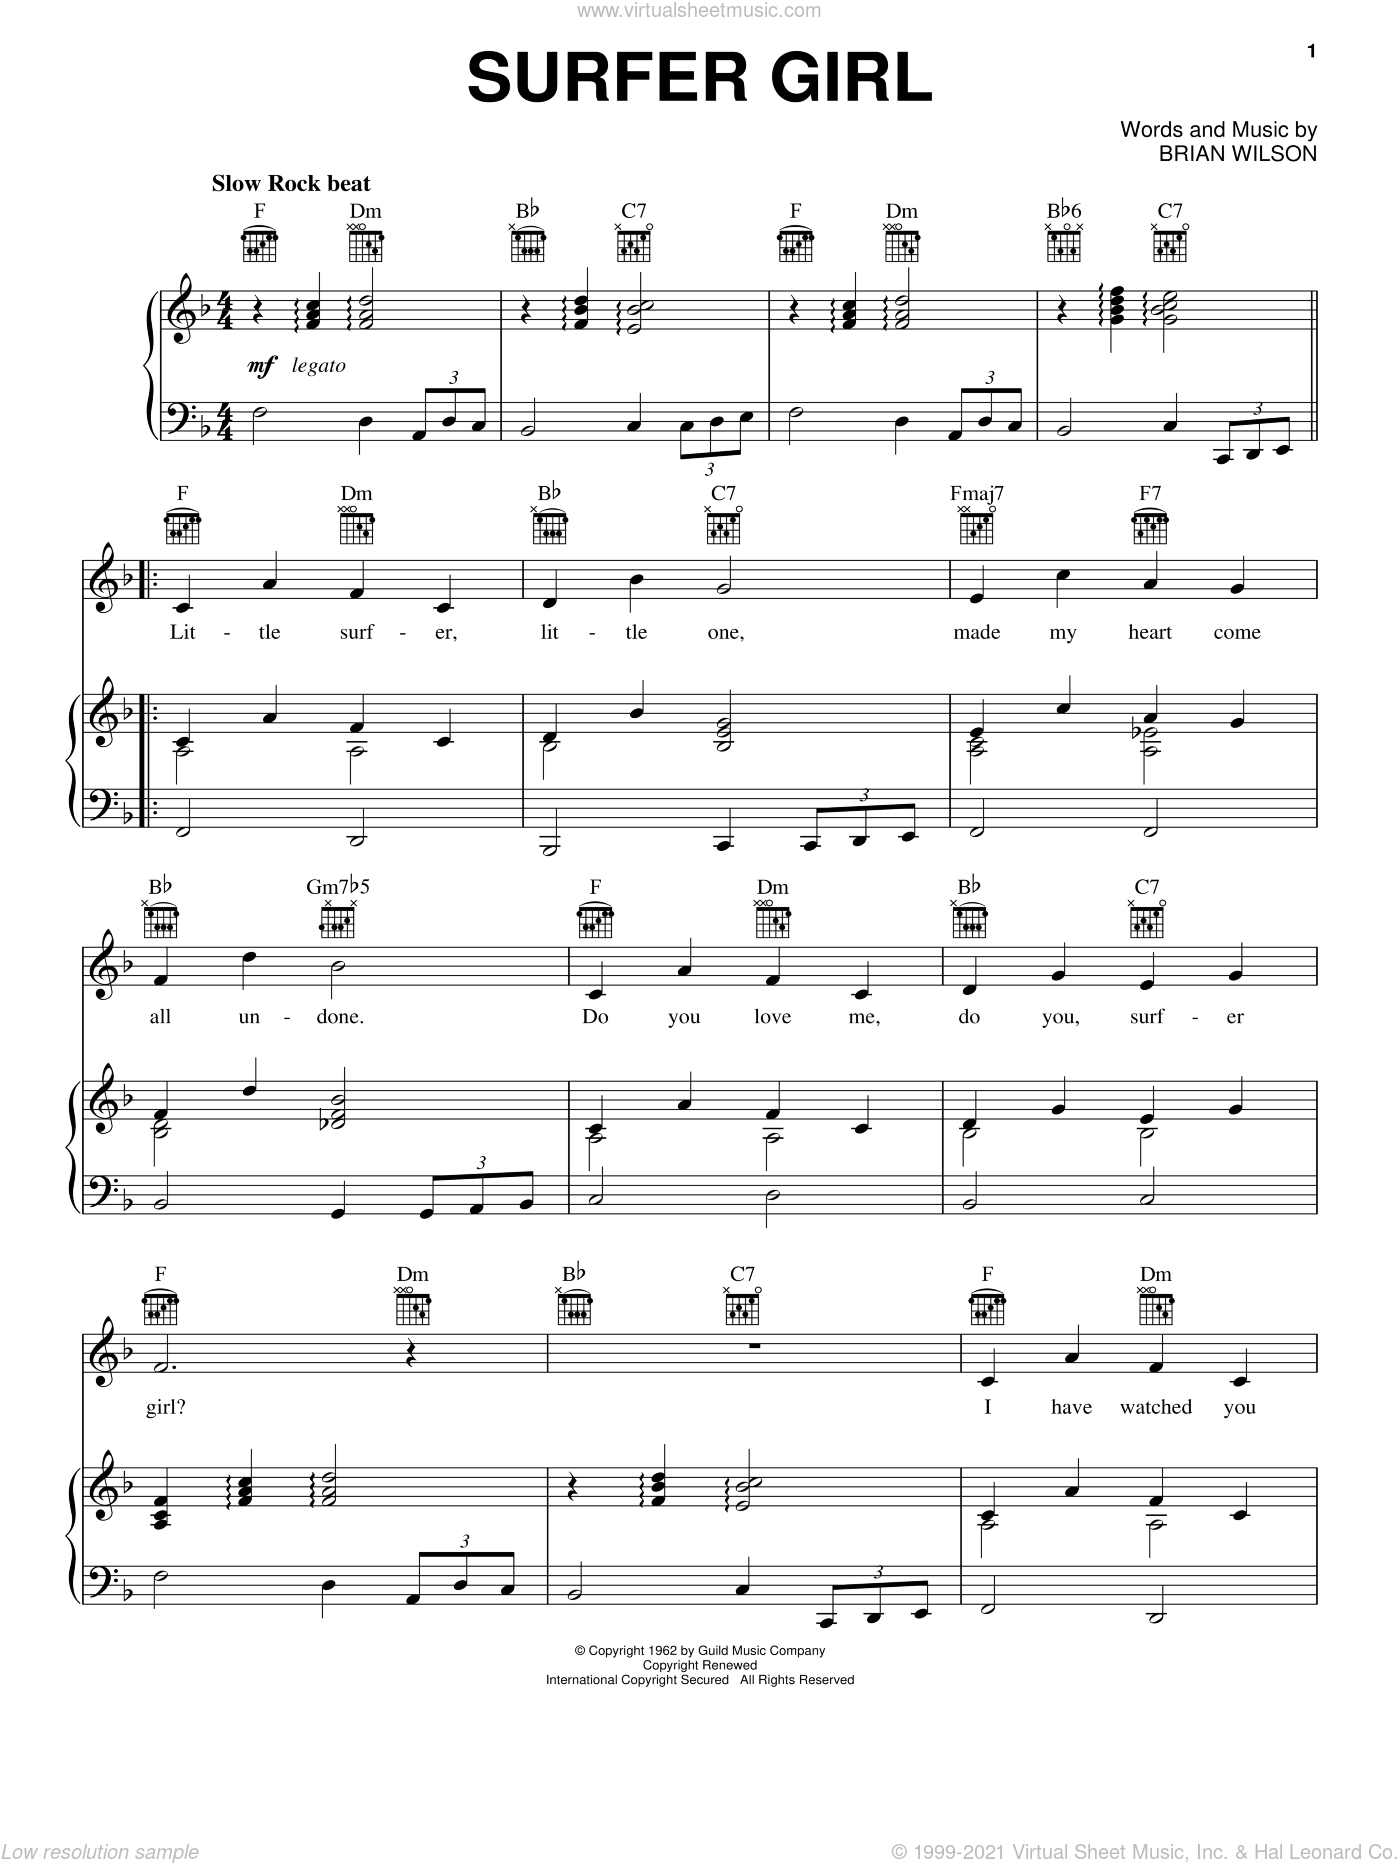 Surfer Girl sheet music for voice, piano or guitar by Brian Wilson